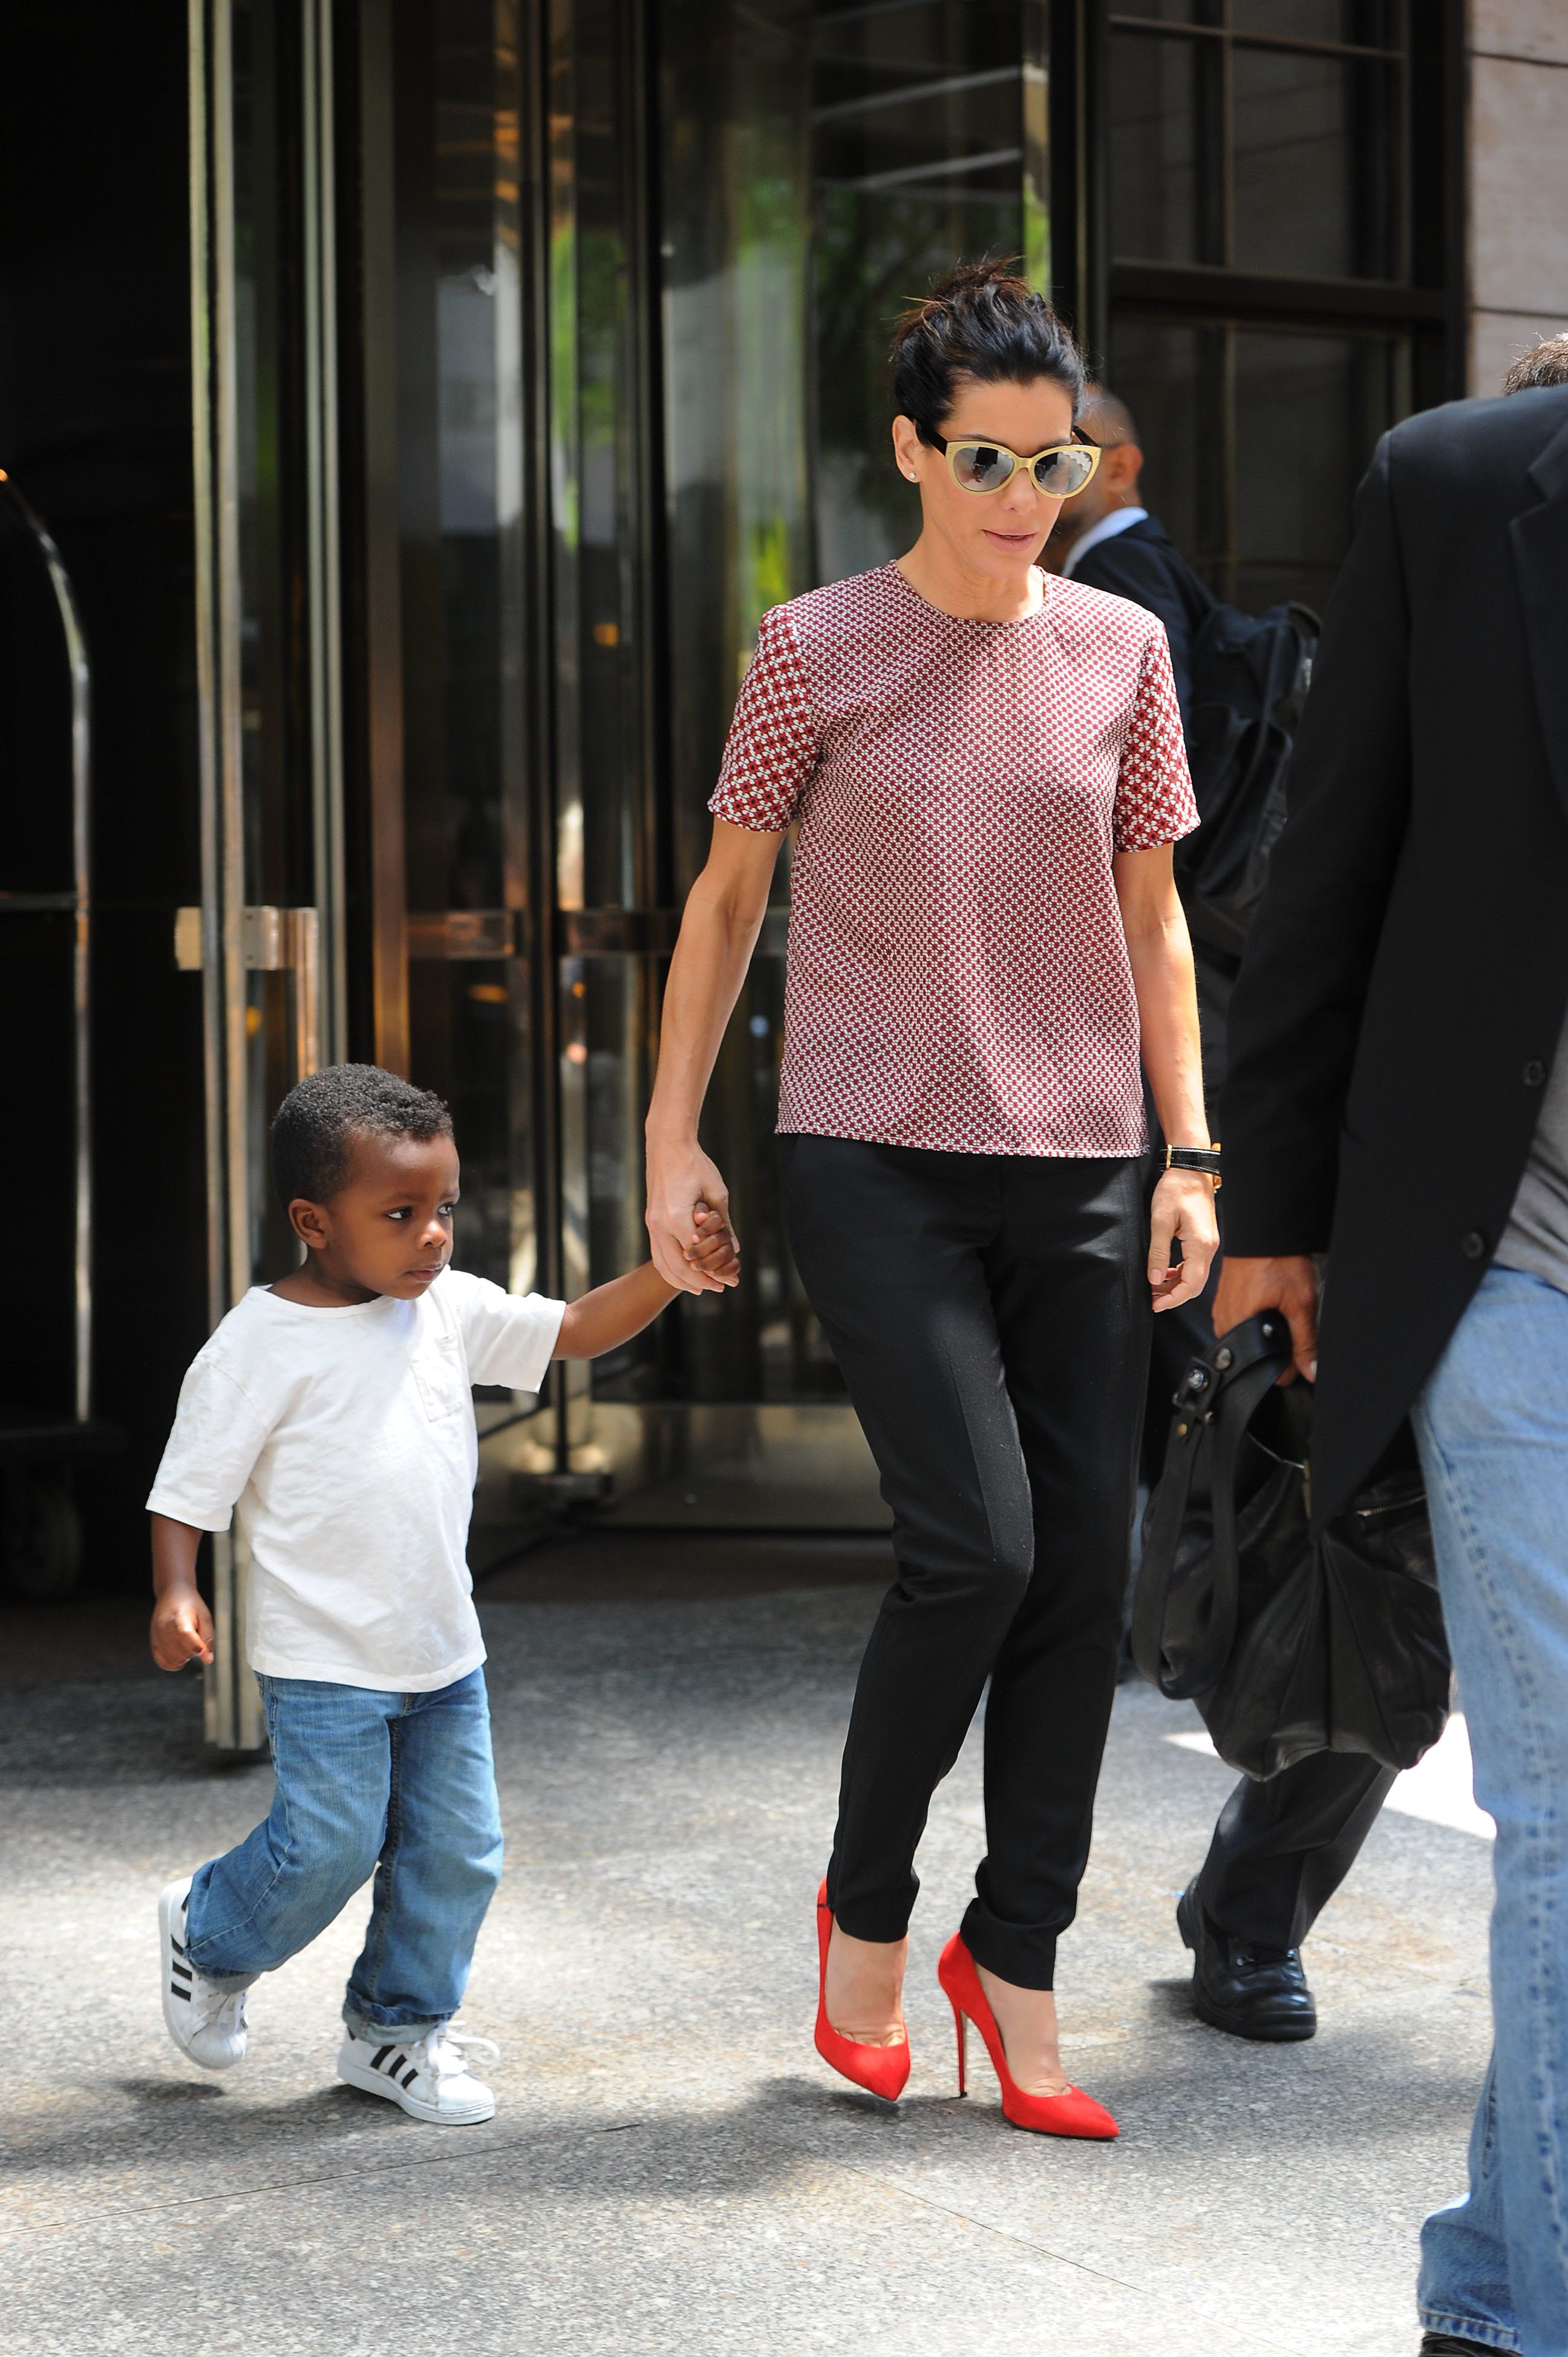 Sandra Bullock and son Louis seen out in New York City on June 24, 2013.